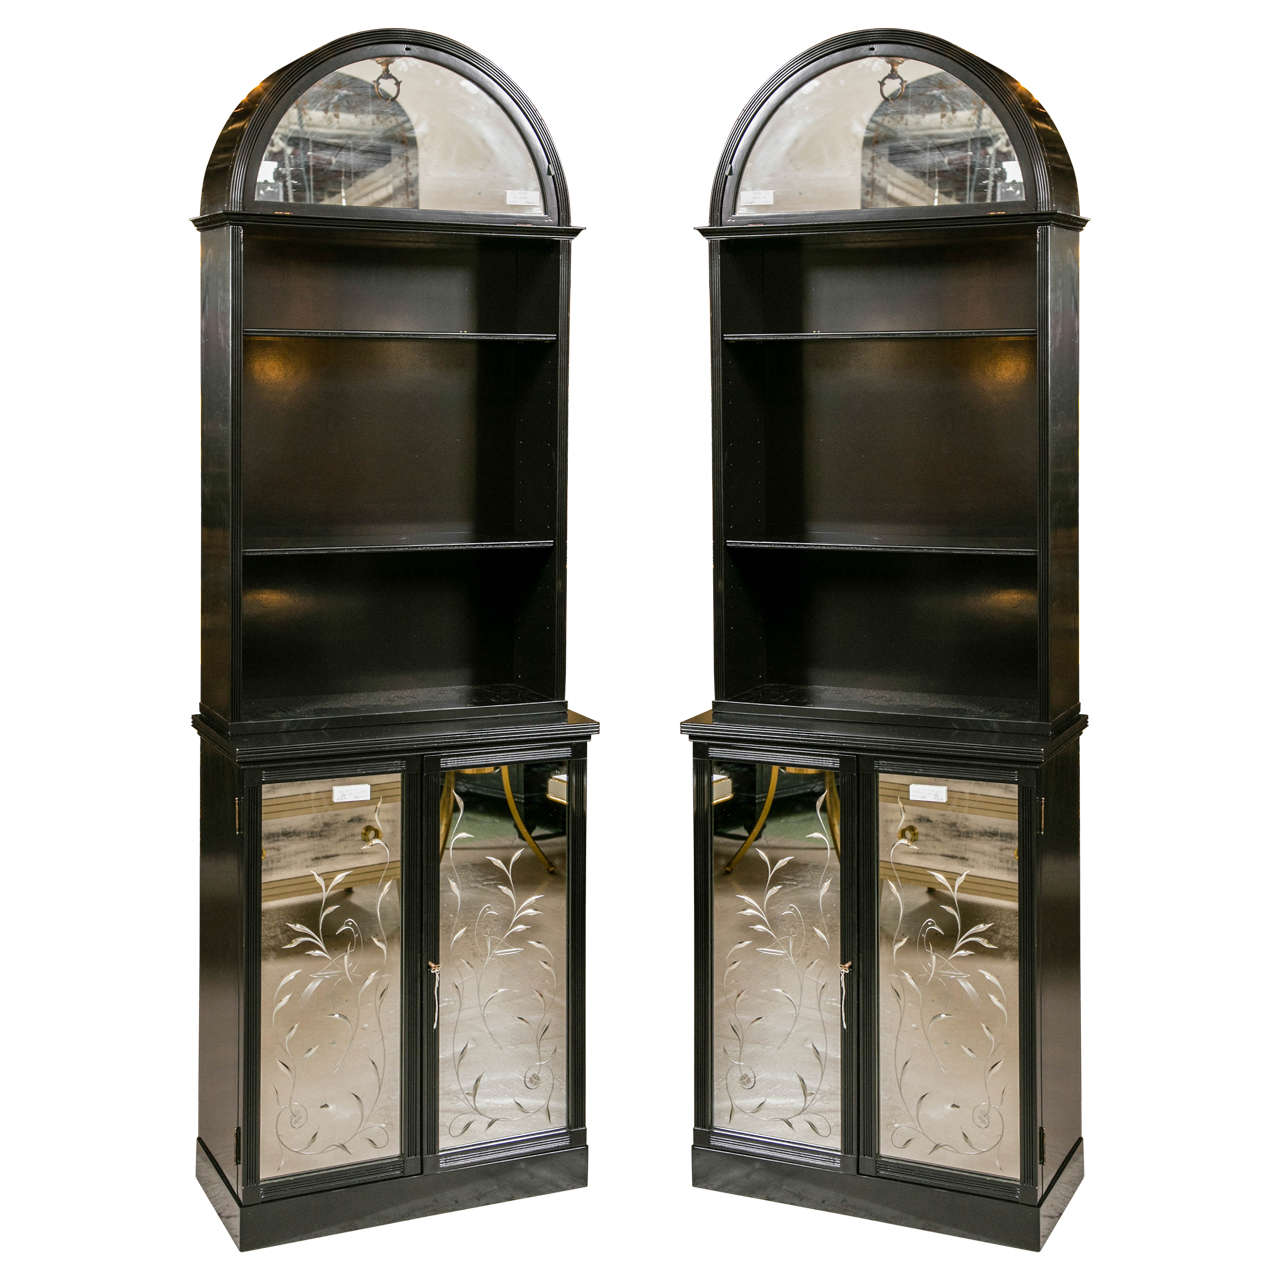 Pair of Etched Detailed Mirror Ebonized Dome Bookcase Etagere Cabinets